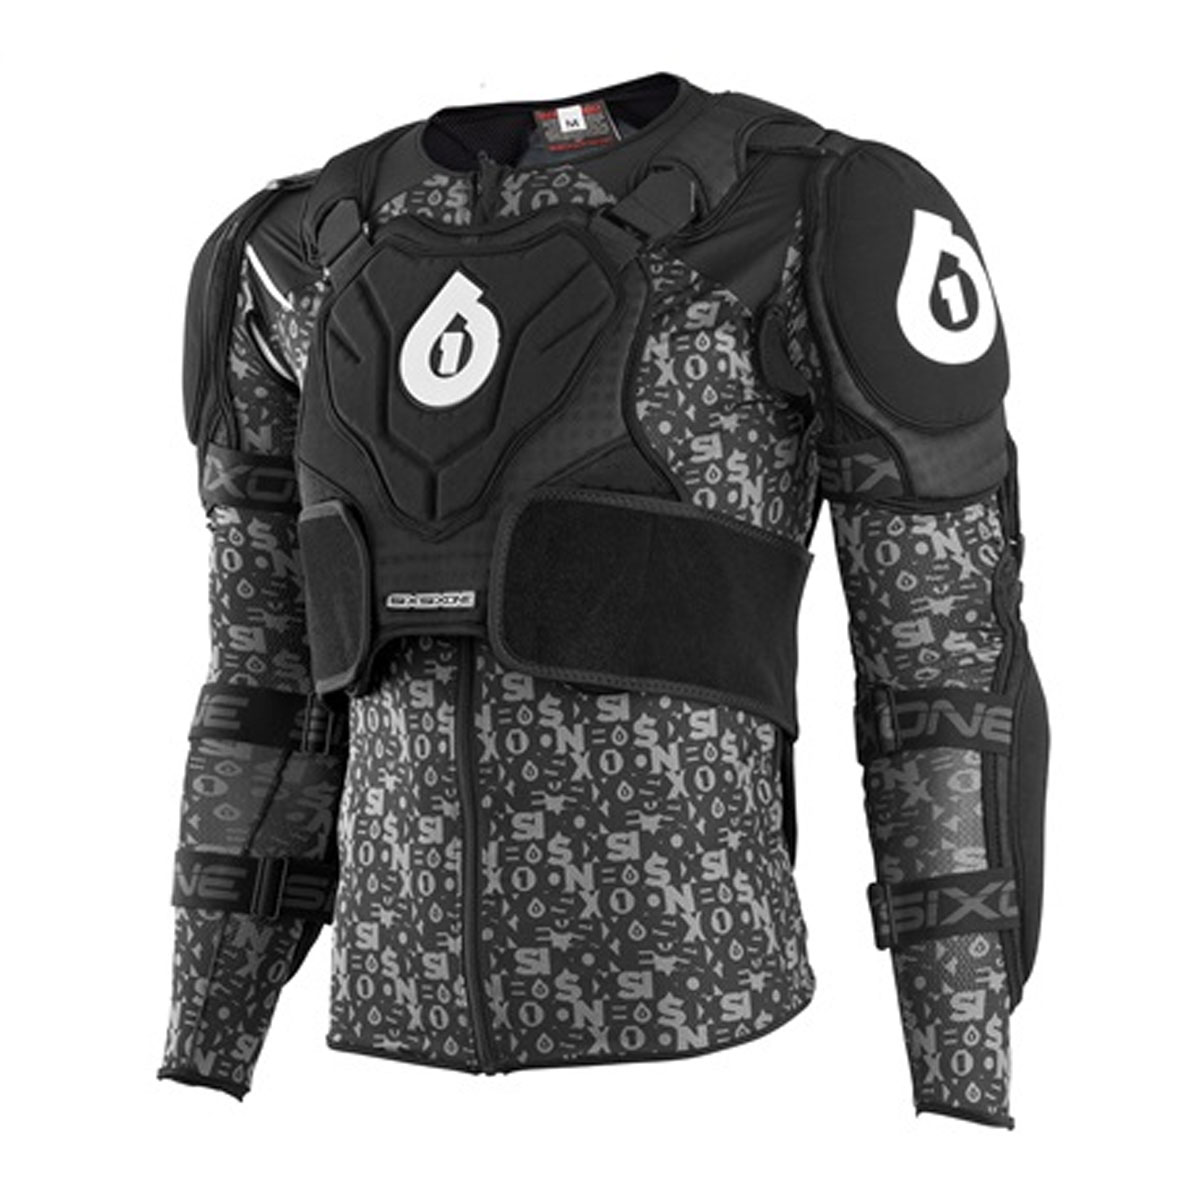 SixSixOne 2015 Men's EVO Pressure Suite BMX/Moto Body Armour - 6988